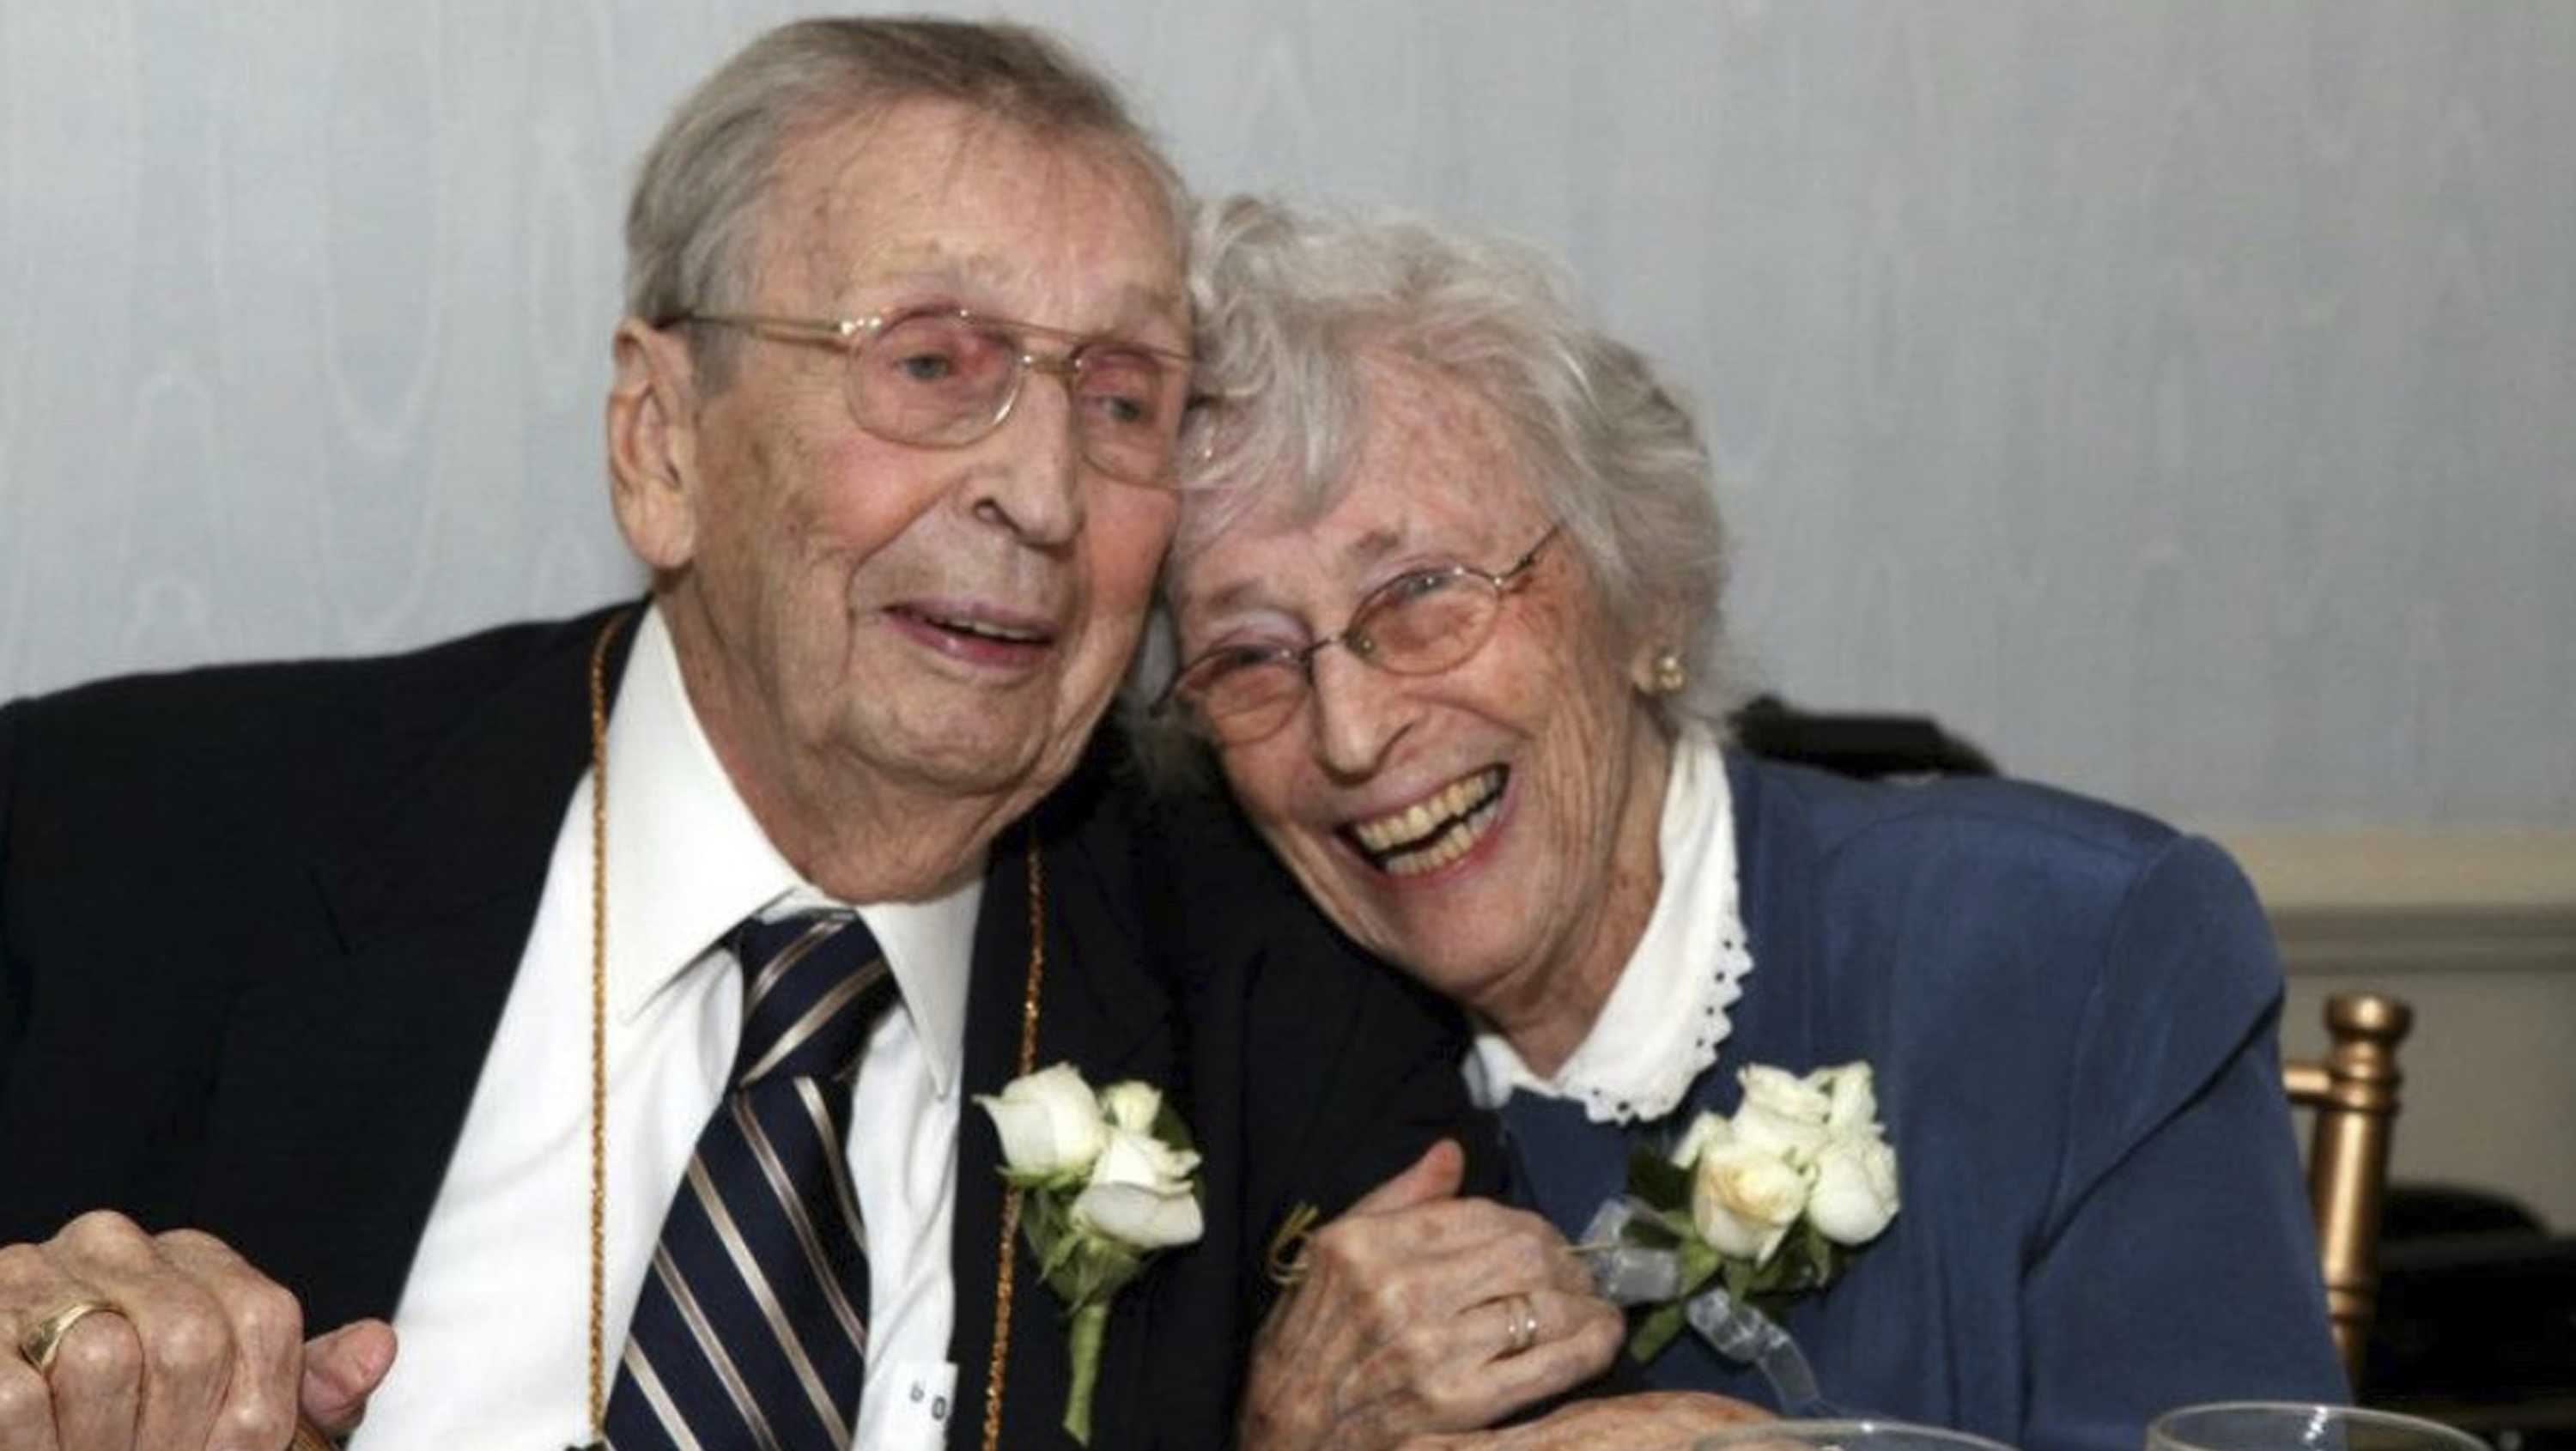 This Sept. 24, 2011 photo provided by Elizabeth Officer shows her grandparents Gilbert Orzell Drake and Evelyn Bennett Drake at the Albany Country Club in Albany, N.Y. The couple, born two years and two days apart and married 78 years, has died within two days of each other. According to their family, 98-year-old Evelyn died July 20, 2018, and her 100-year-old husband Gilbert passed away two days later. Both died of natural causes with their family by their sides at the couple's home in Delmar, an Albany suburb.